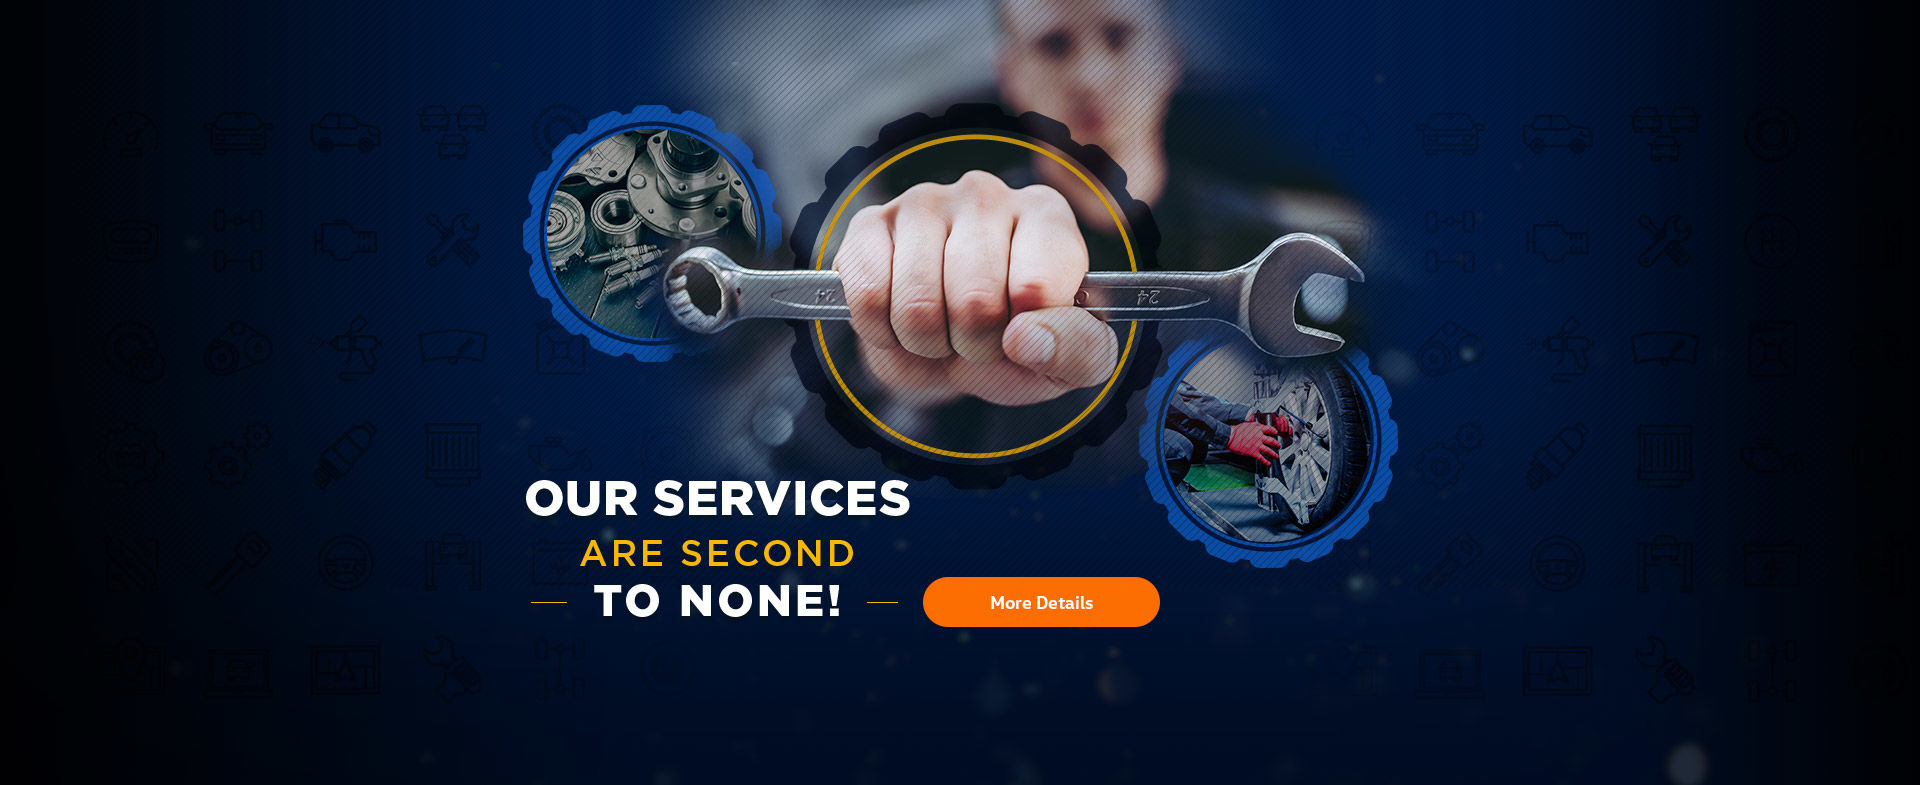 Our services are second to none!